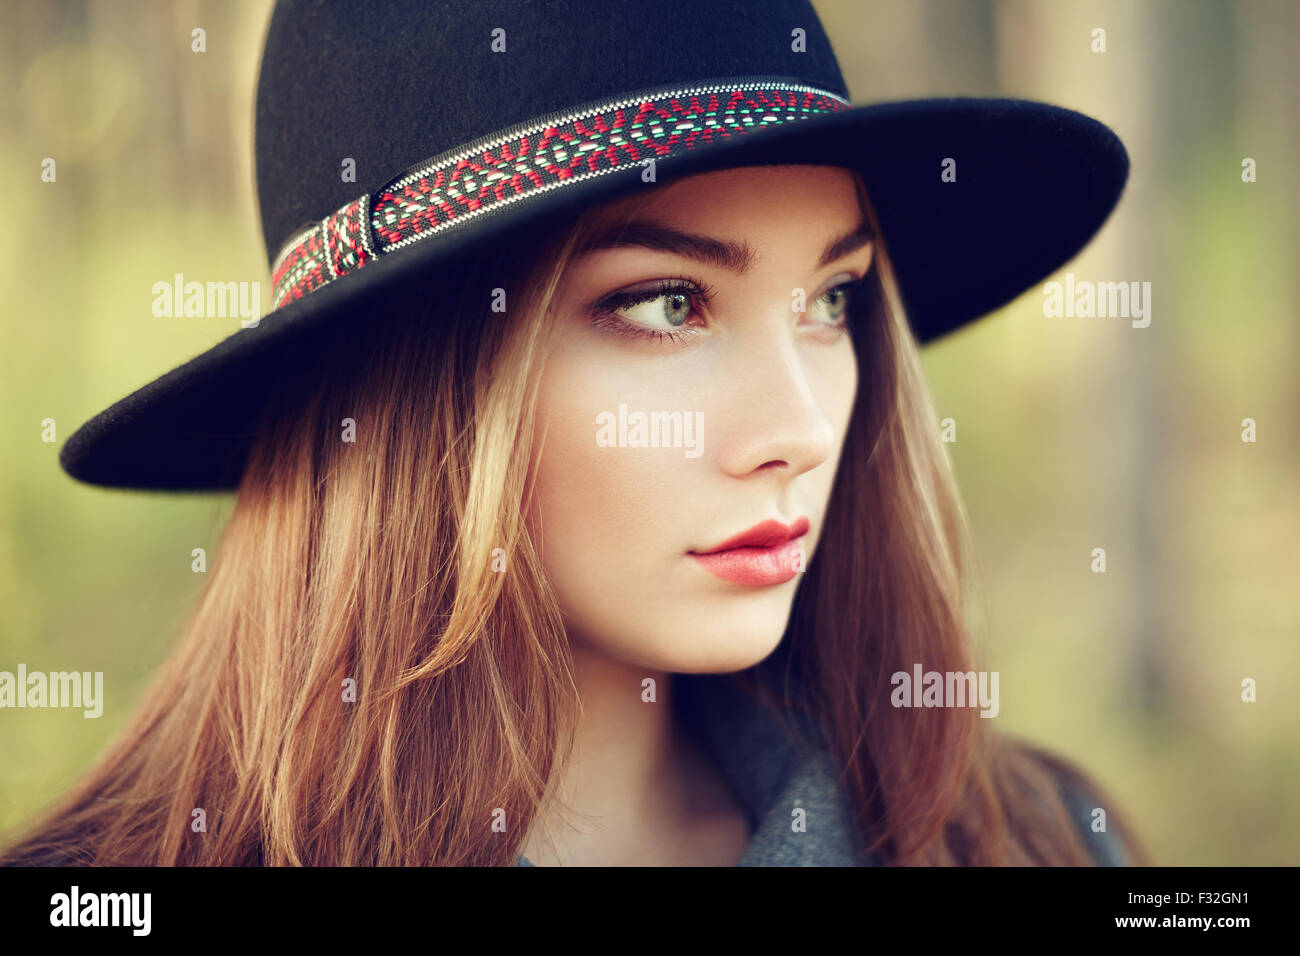 Portrait of young beautiful woman in autumn coat. Girl in hat. Fashion photo - Stock Image